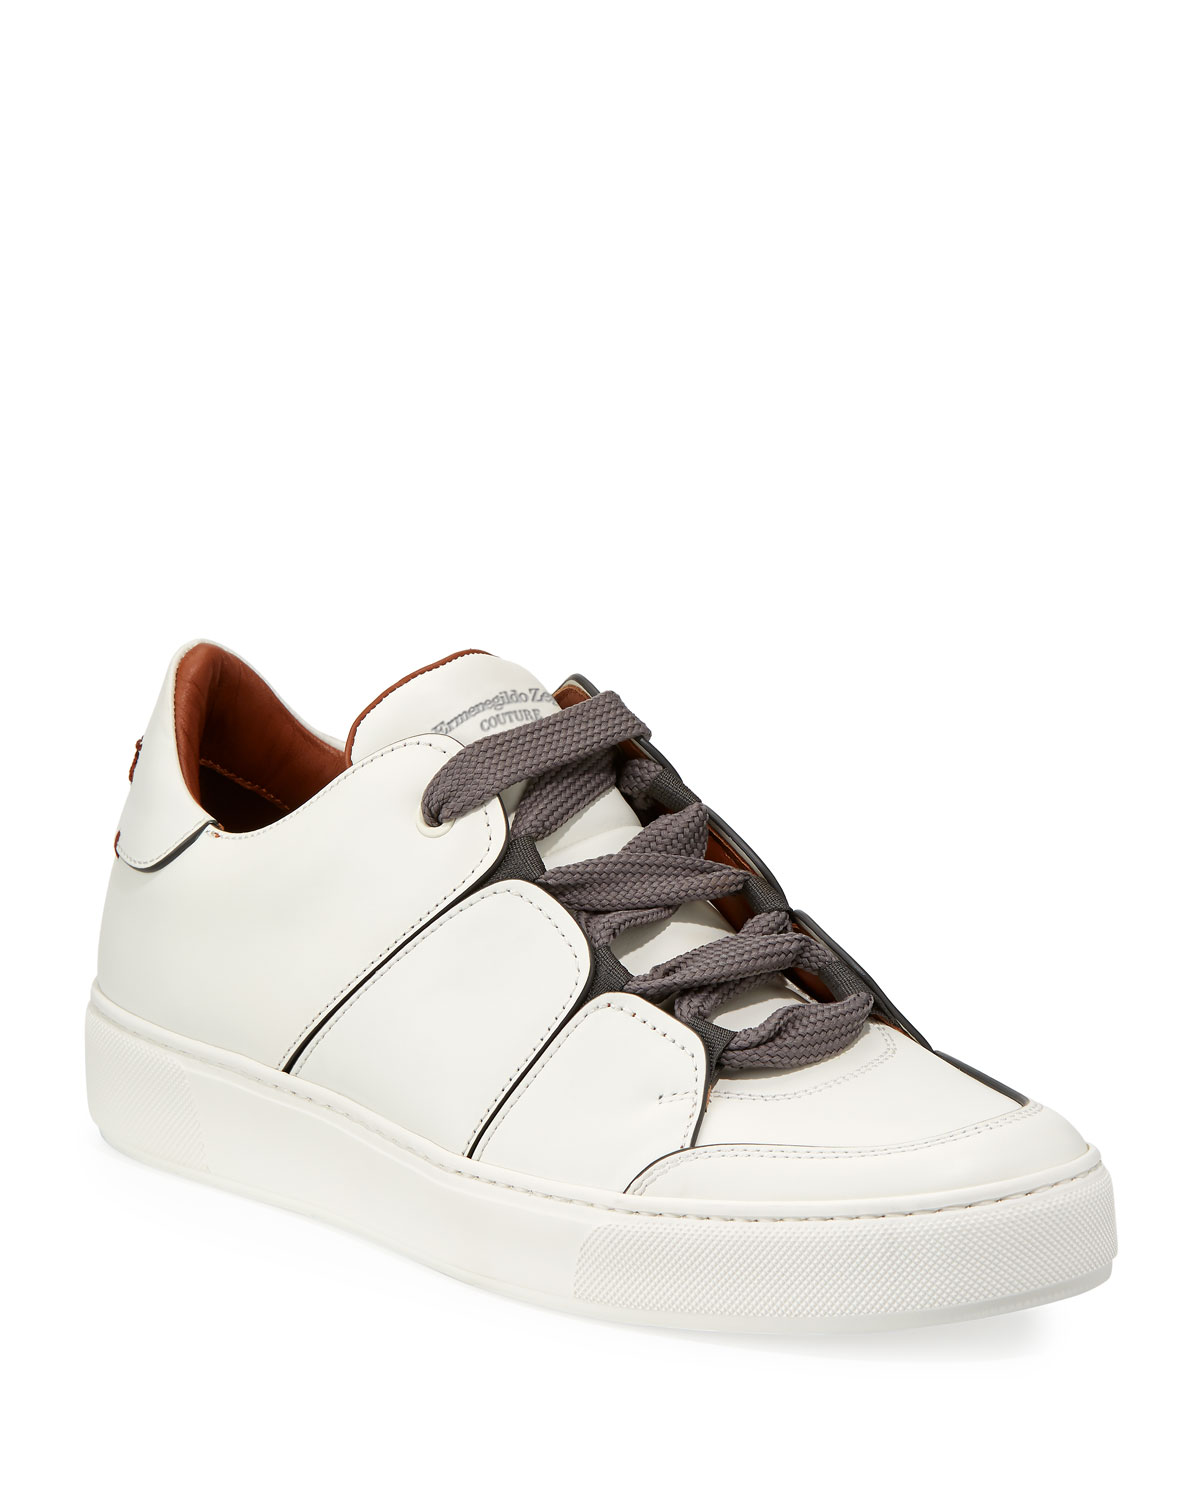 be5f3fec Tiziano Men's Leather Low-Top Sneakers, White